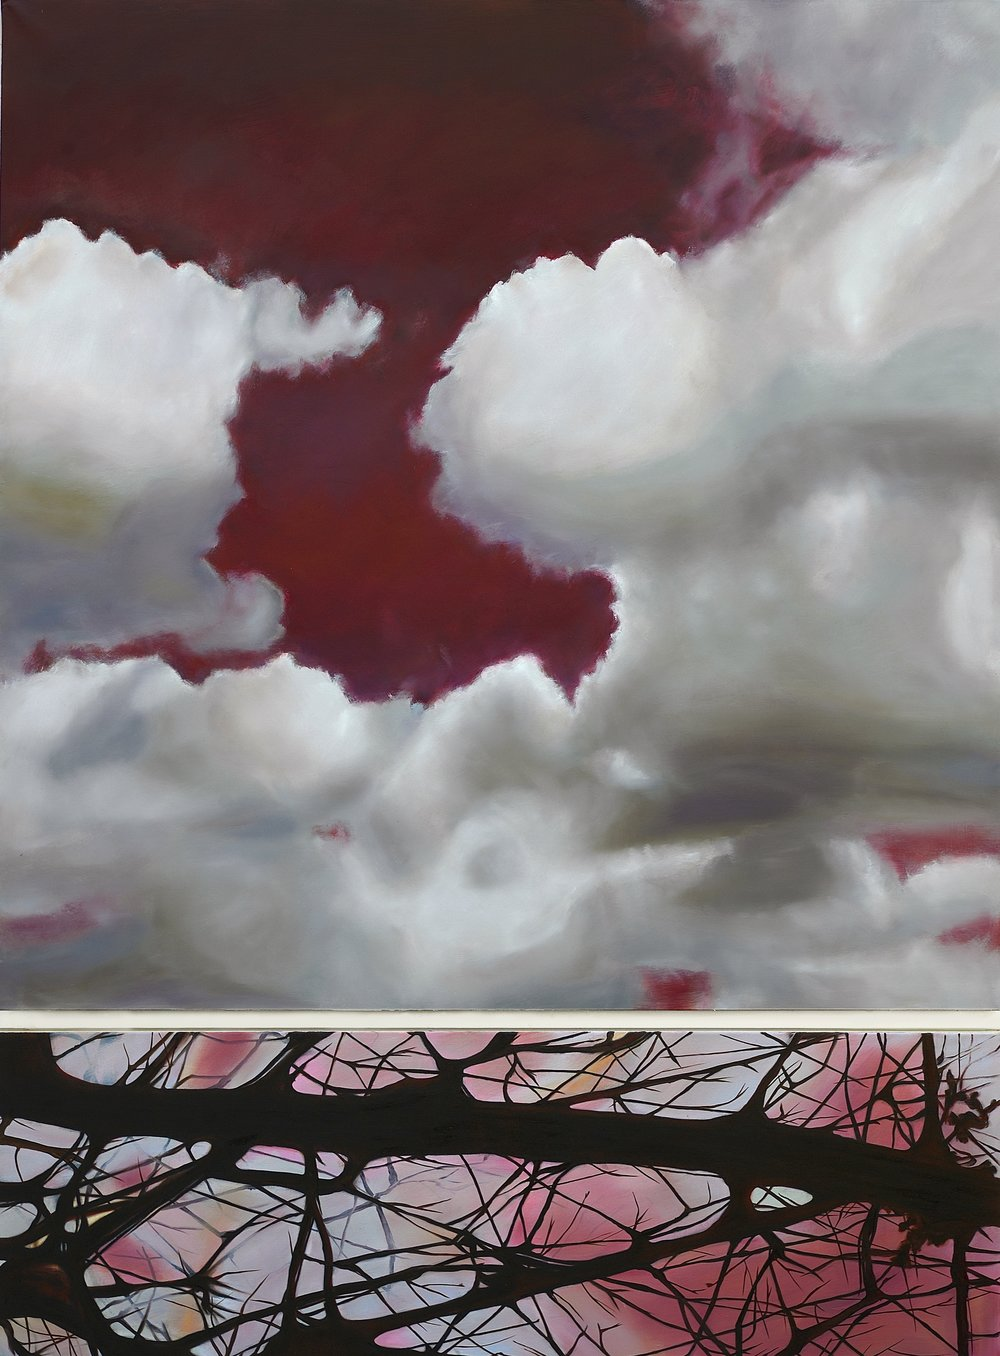 Le Dormeur du Val,  2016  oil on linen, diptych, 84 x 63 in, 213 x 160 cm